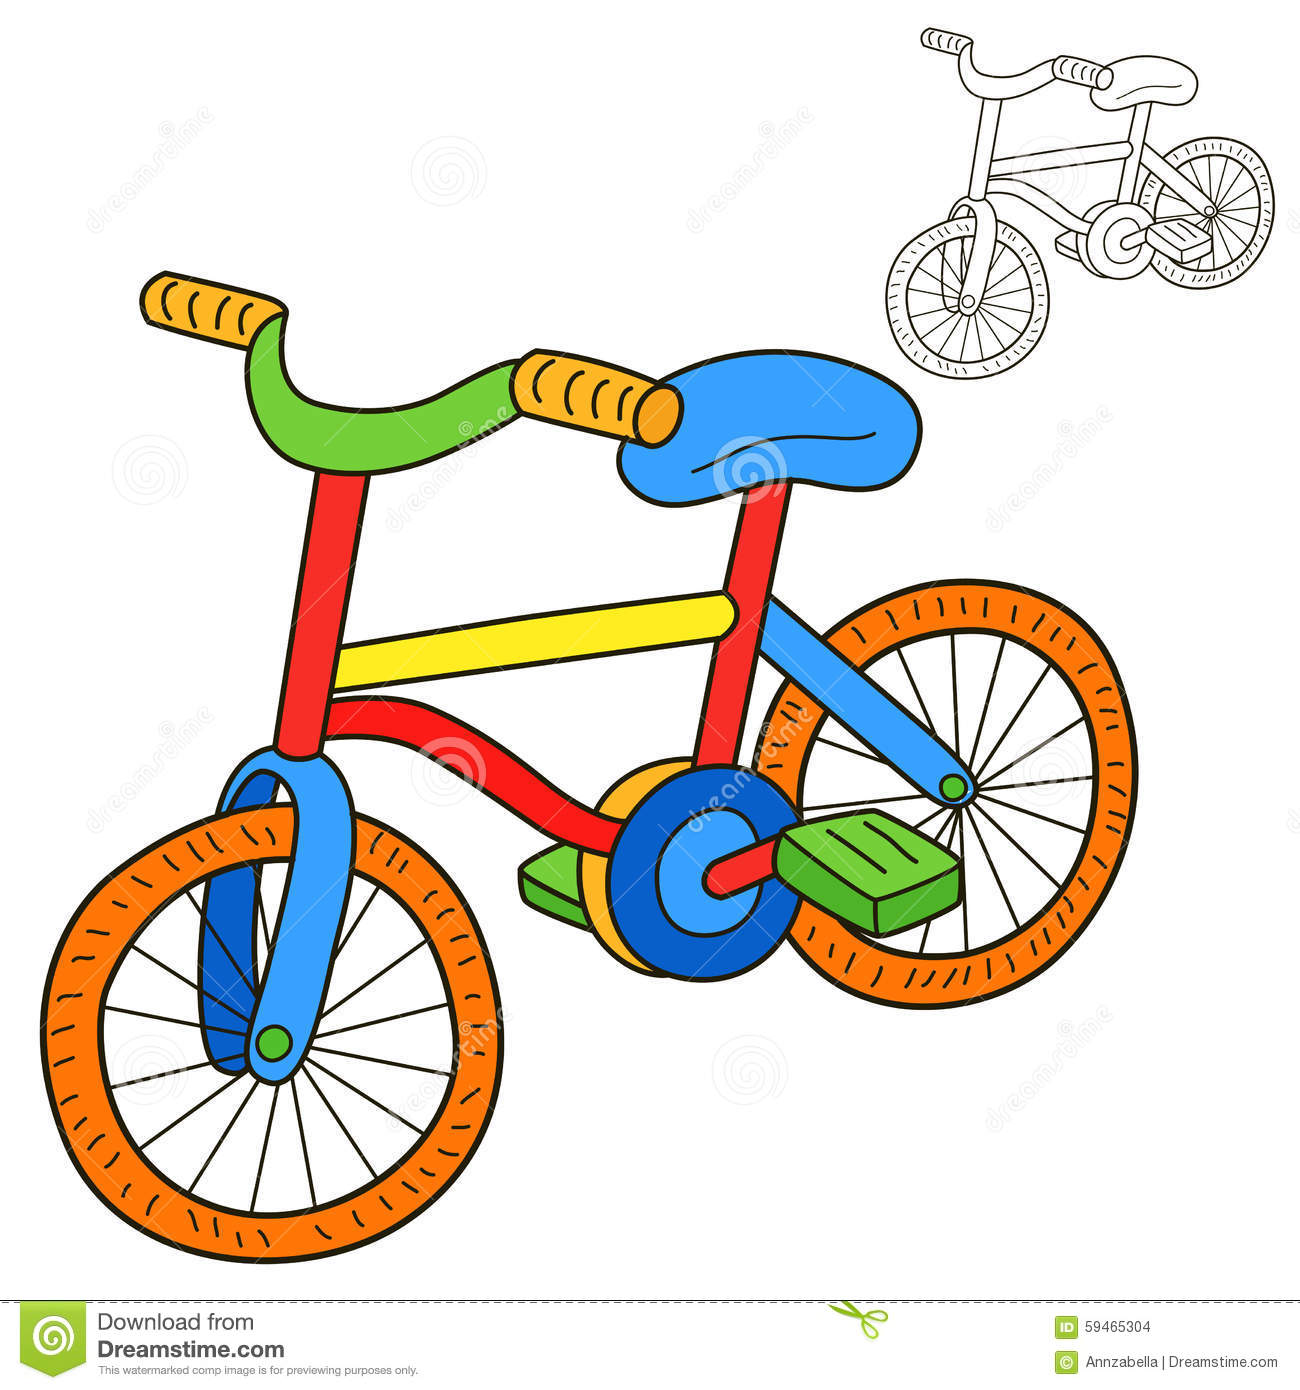 bicycle book cartoon coloring - Bicycle Coloring Book